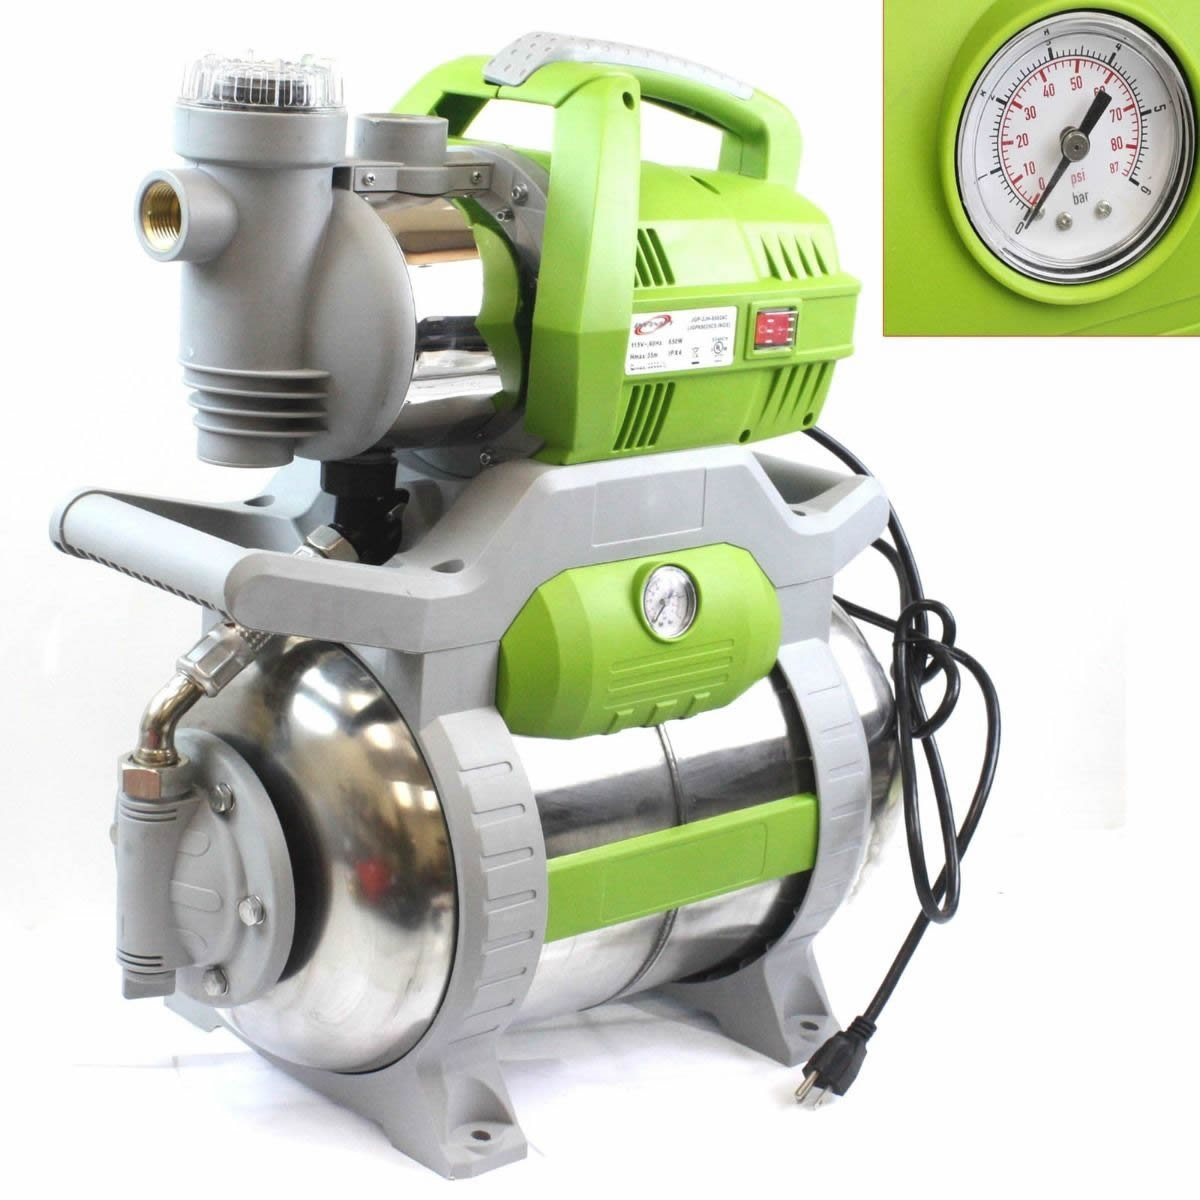 1 Hp Shallow Jet Booster Water Pump W/ Stainless Pressure Tank Sprinkler Home